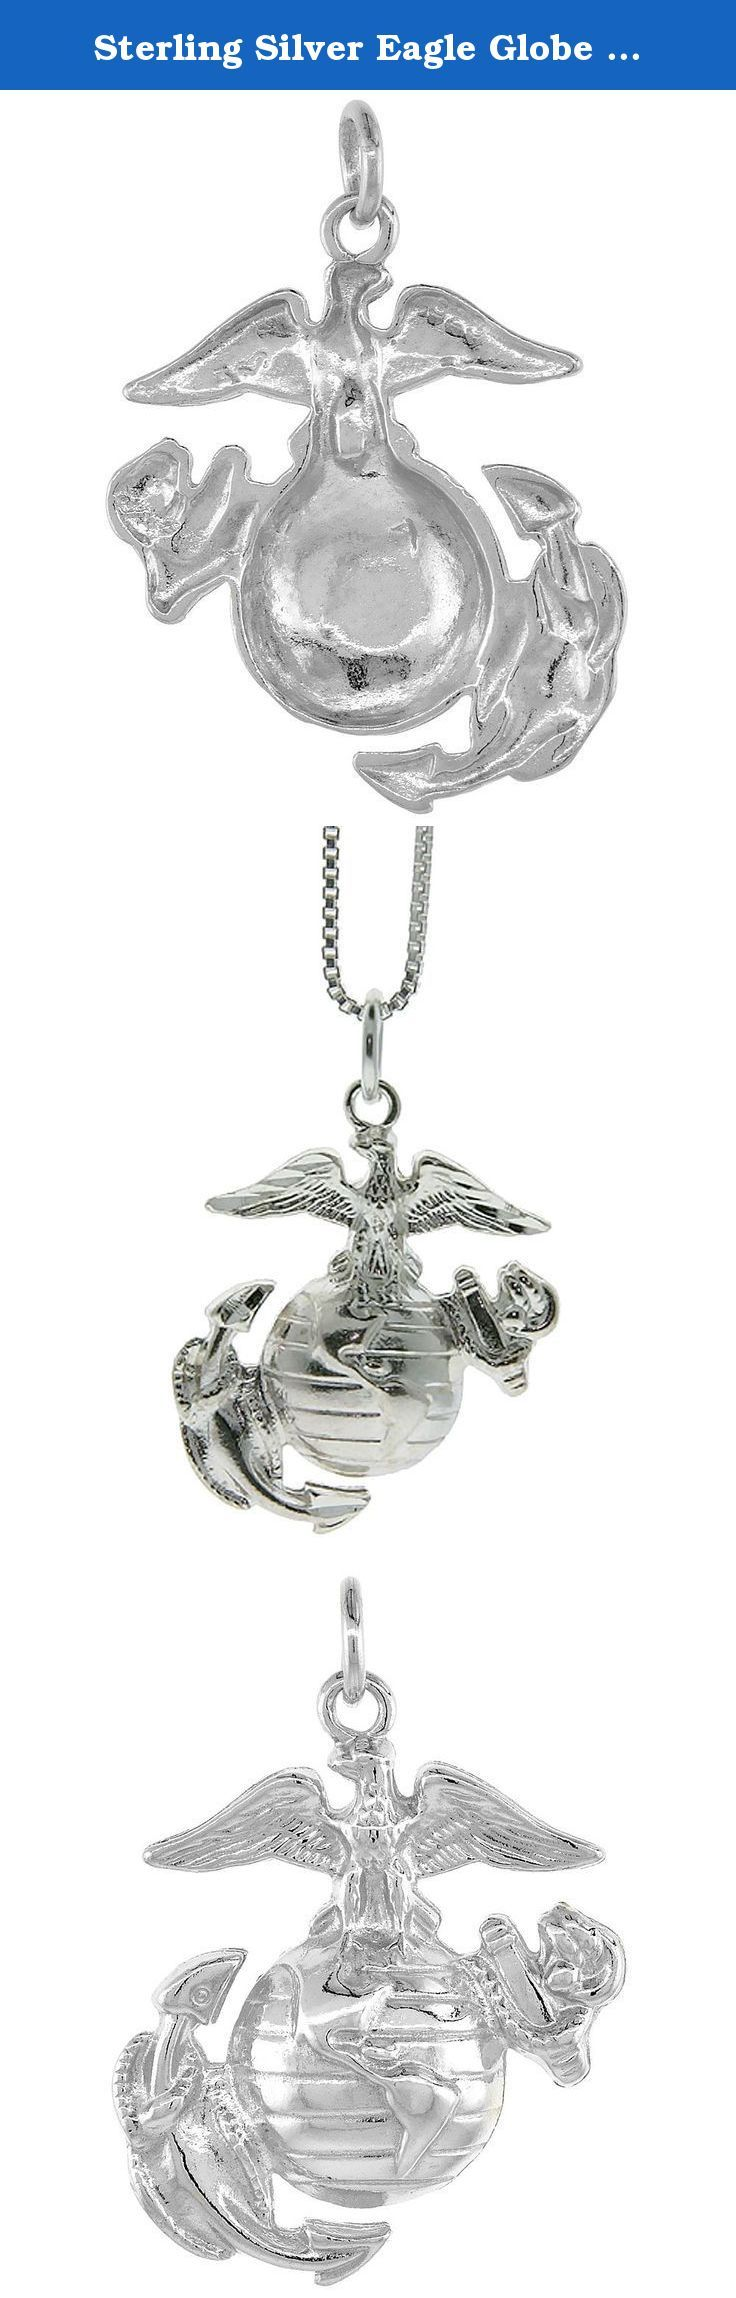 """Sterling Silver Eagle Globe & Anchor U.S. Marines EGA Pendant, 1 1/8 inch tall. Sterling Silver Eagle Pendant, Very Well Made. It measures about 3/4"""""""""""""""" (19mm) Tall not including the bail. NO Chain Included ©."""